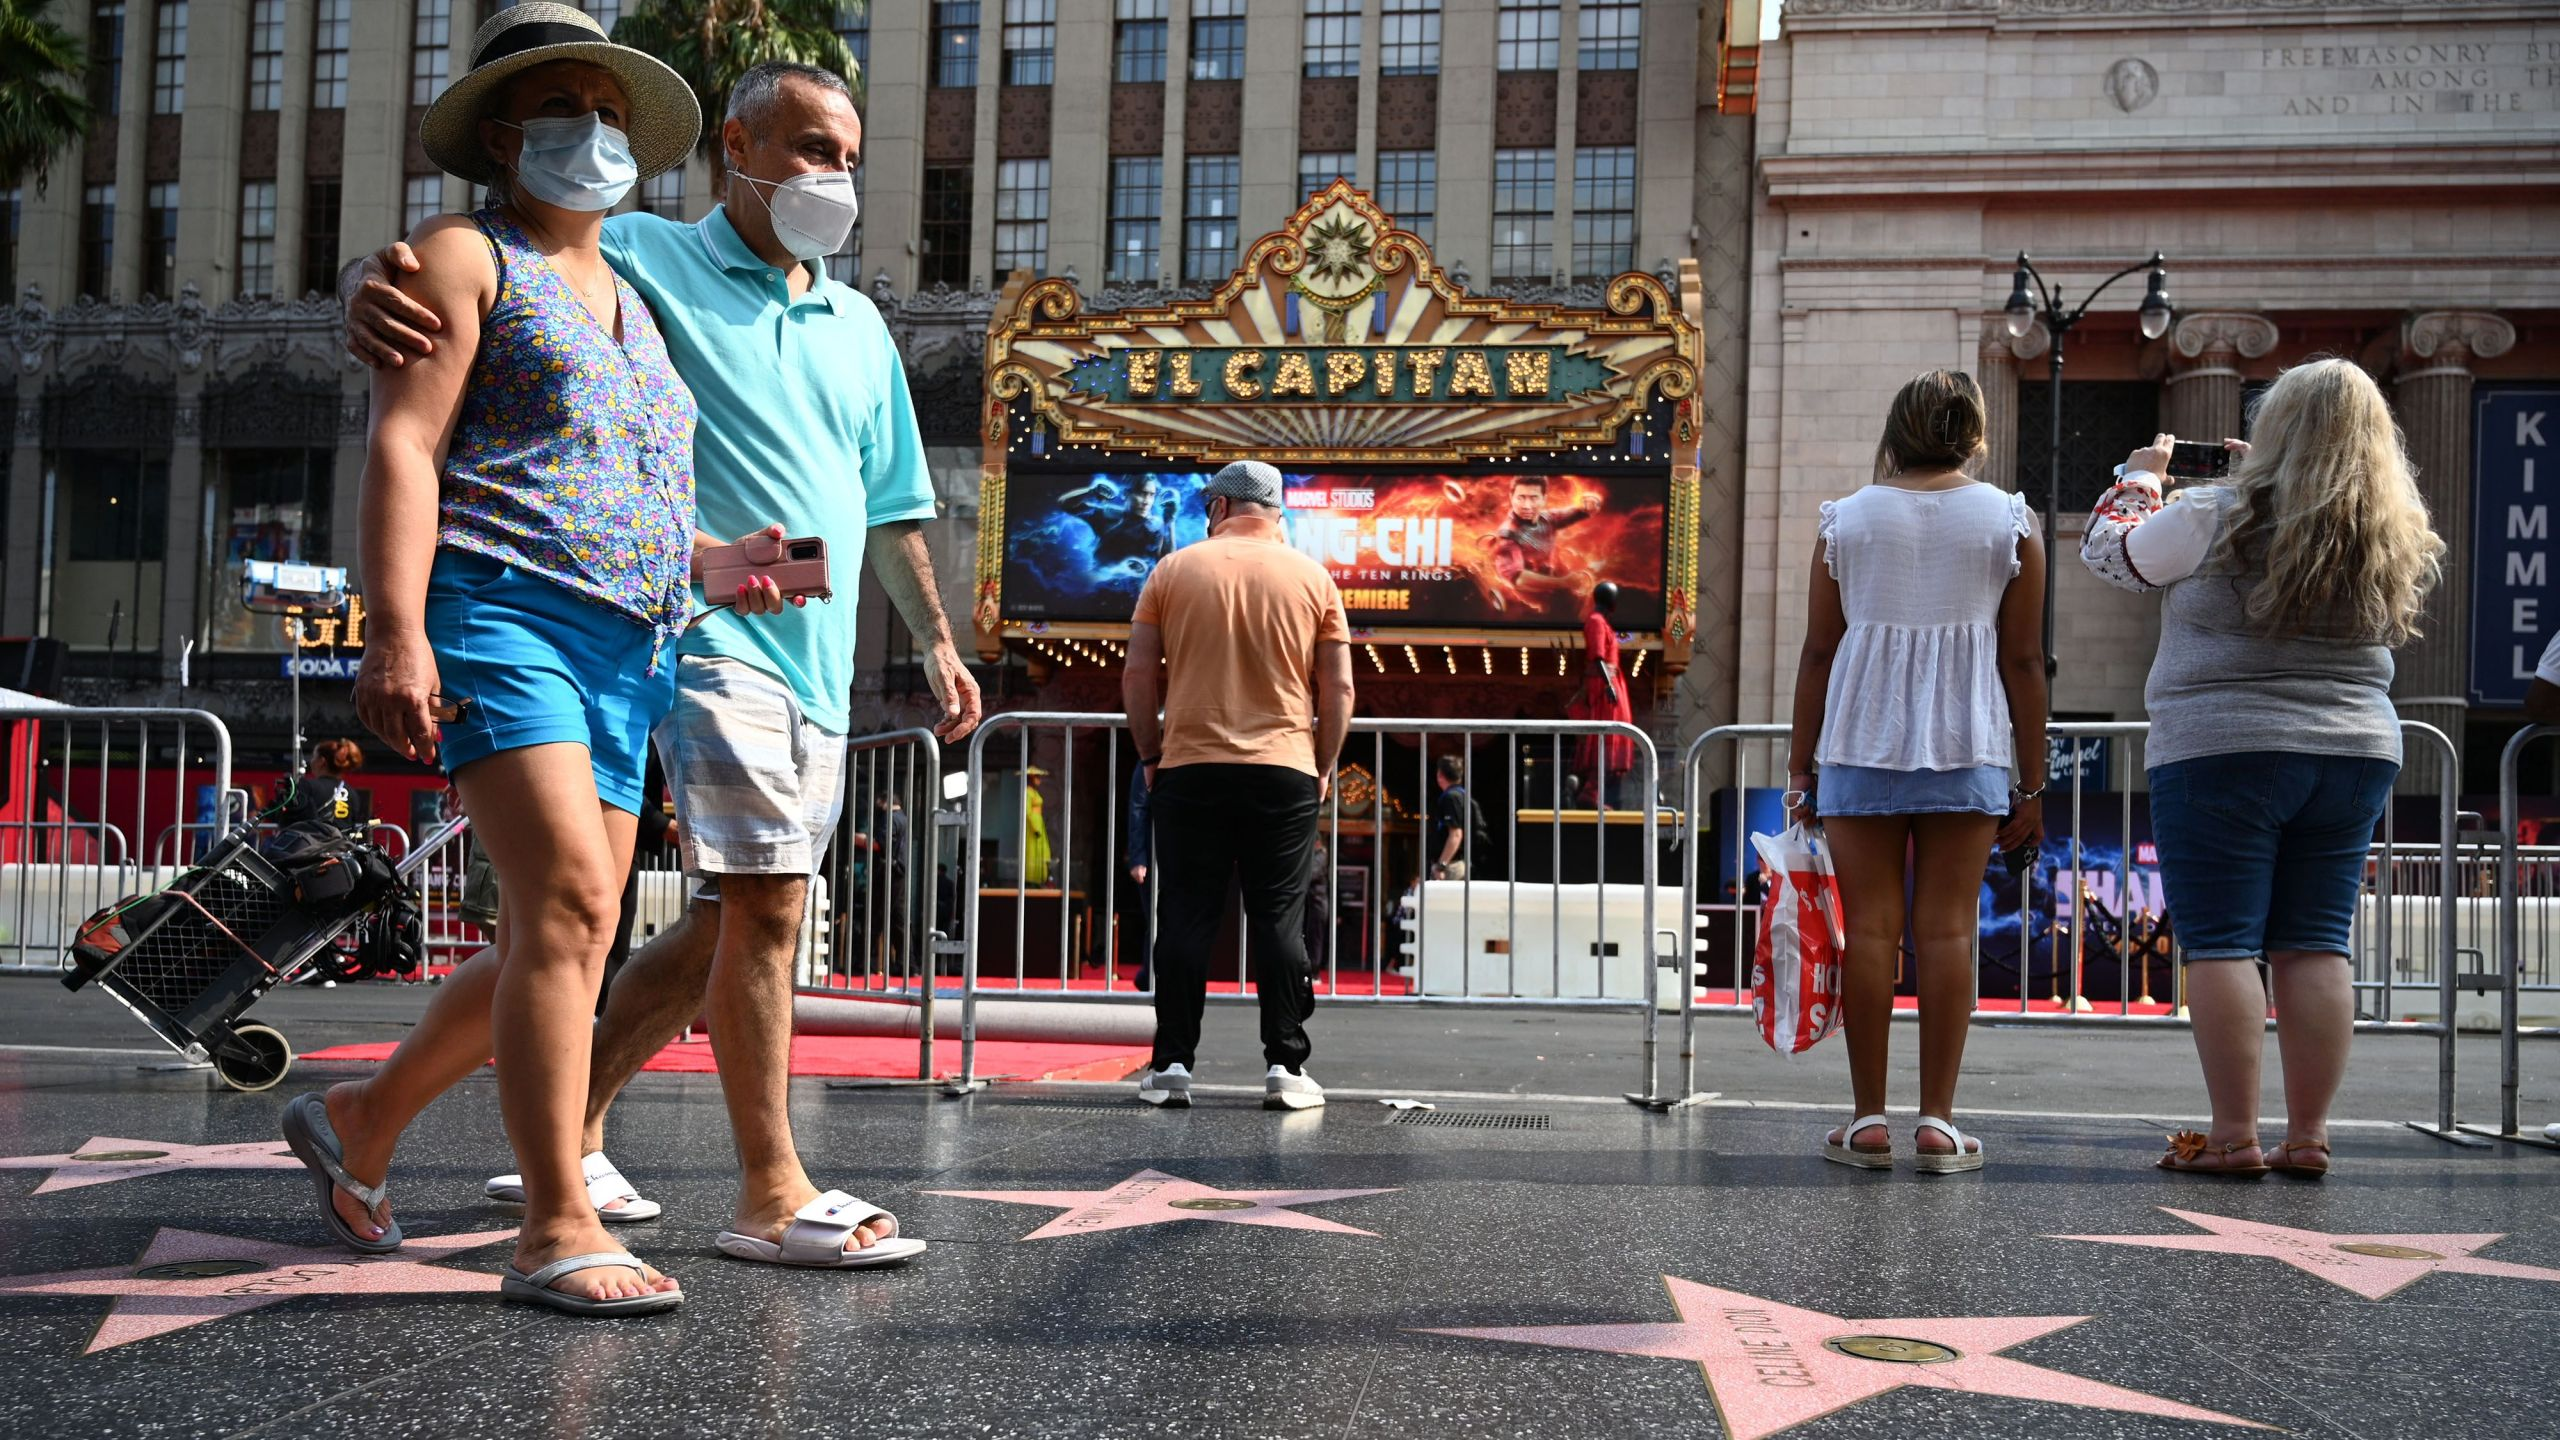 Tourists walk on Hollywood Boulevard's Walk of Fame on Aug. 16, 2021. (Robyn Beck / AFP / Getty Images)